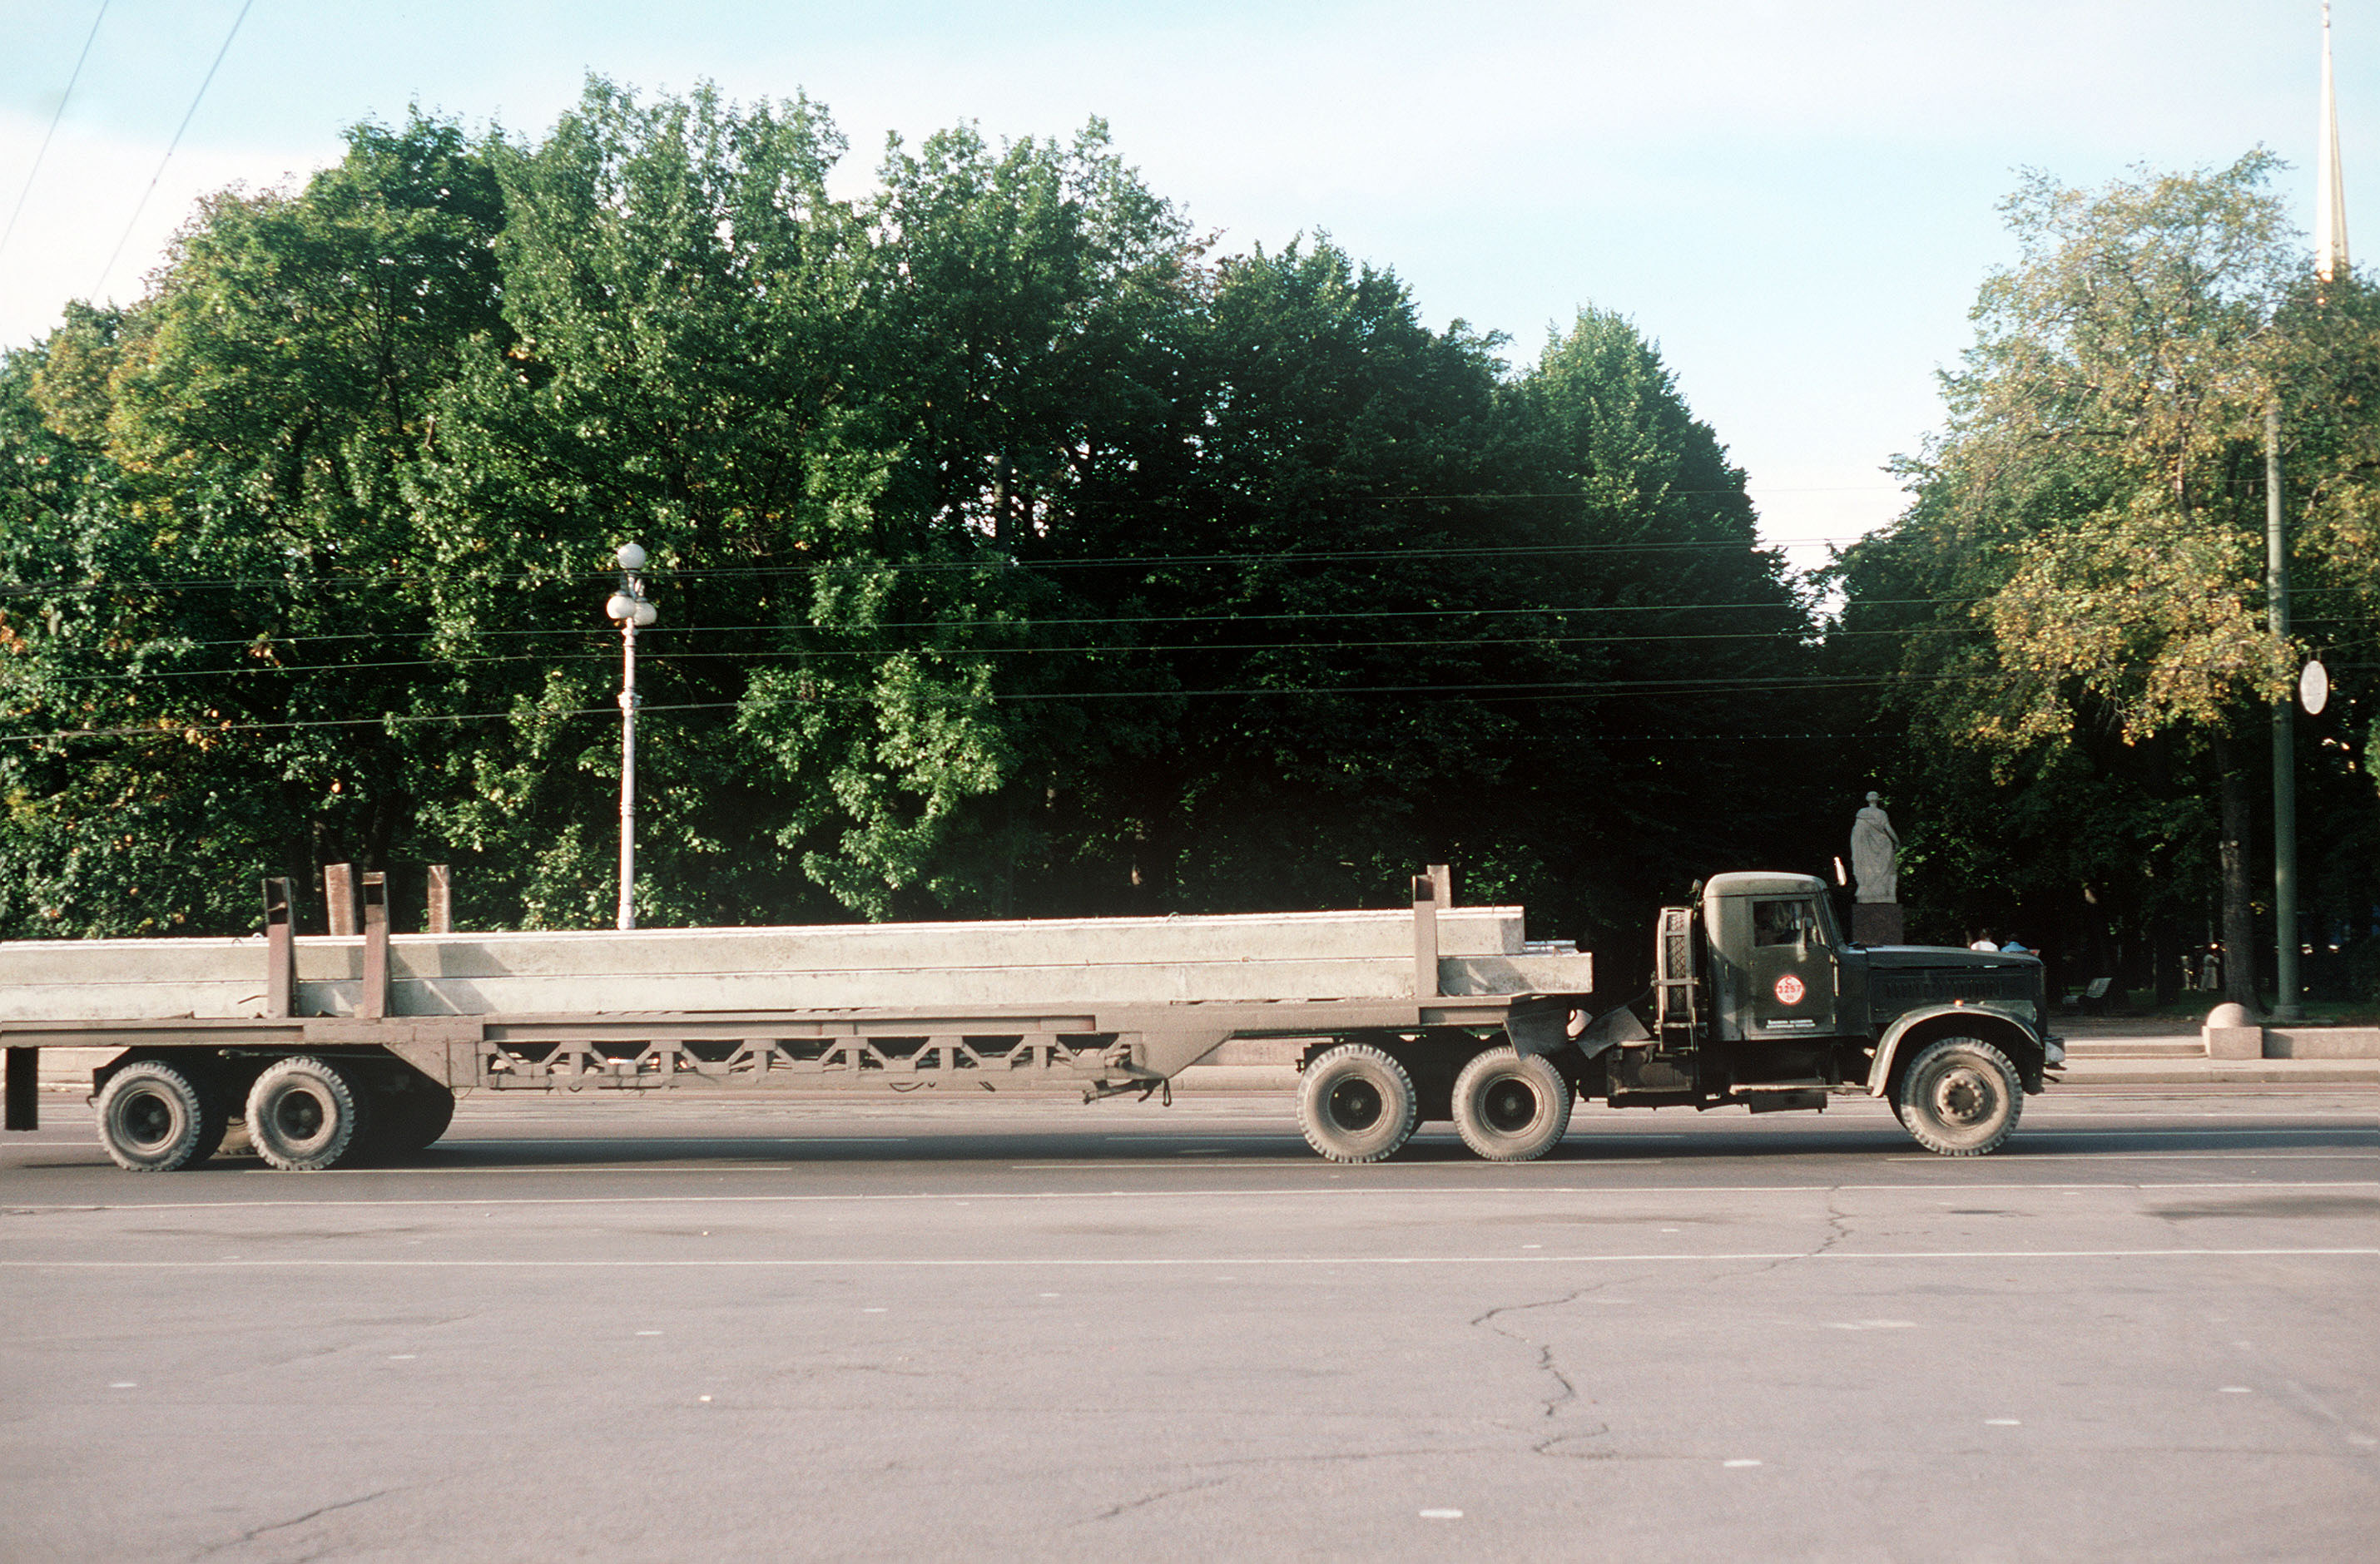 A KrAZ-258 tractor truck and transport t.JPEG